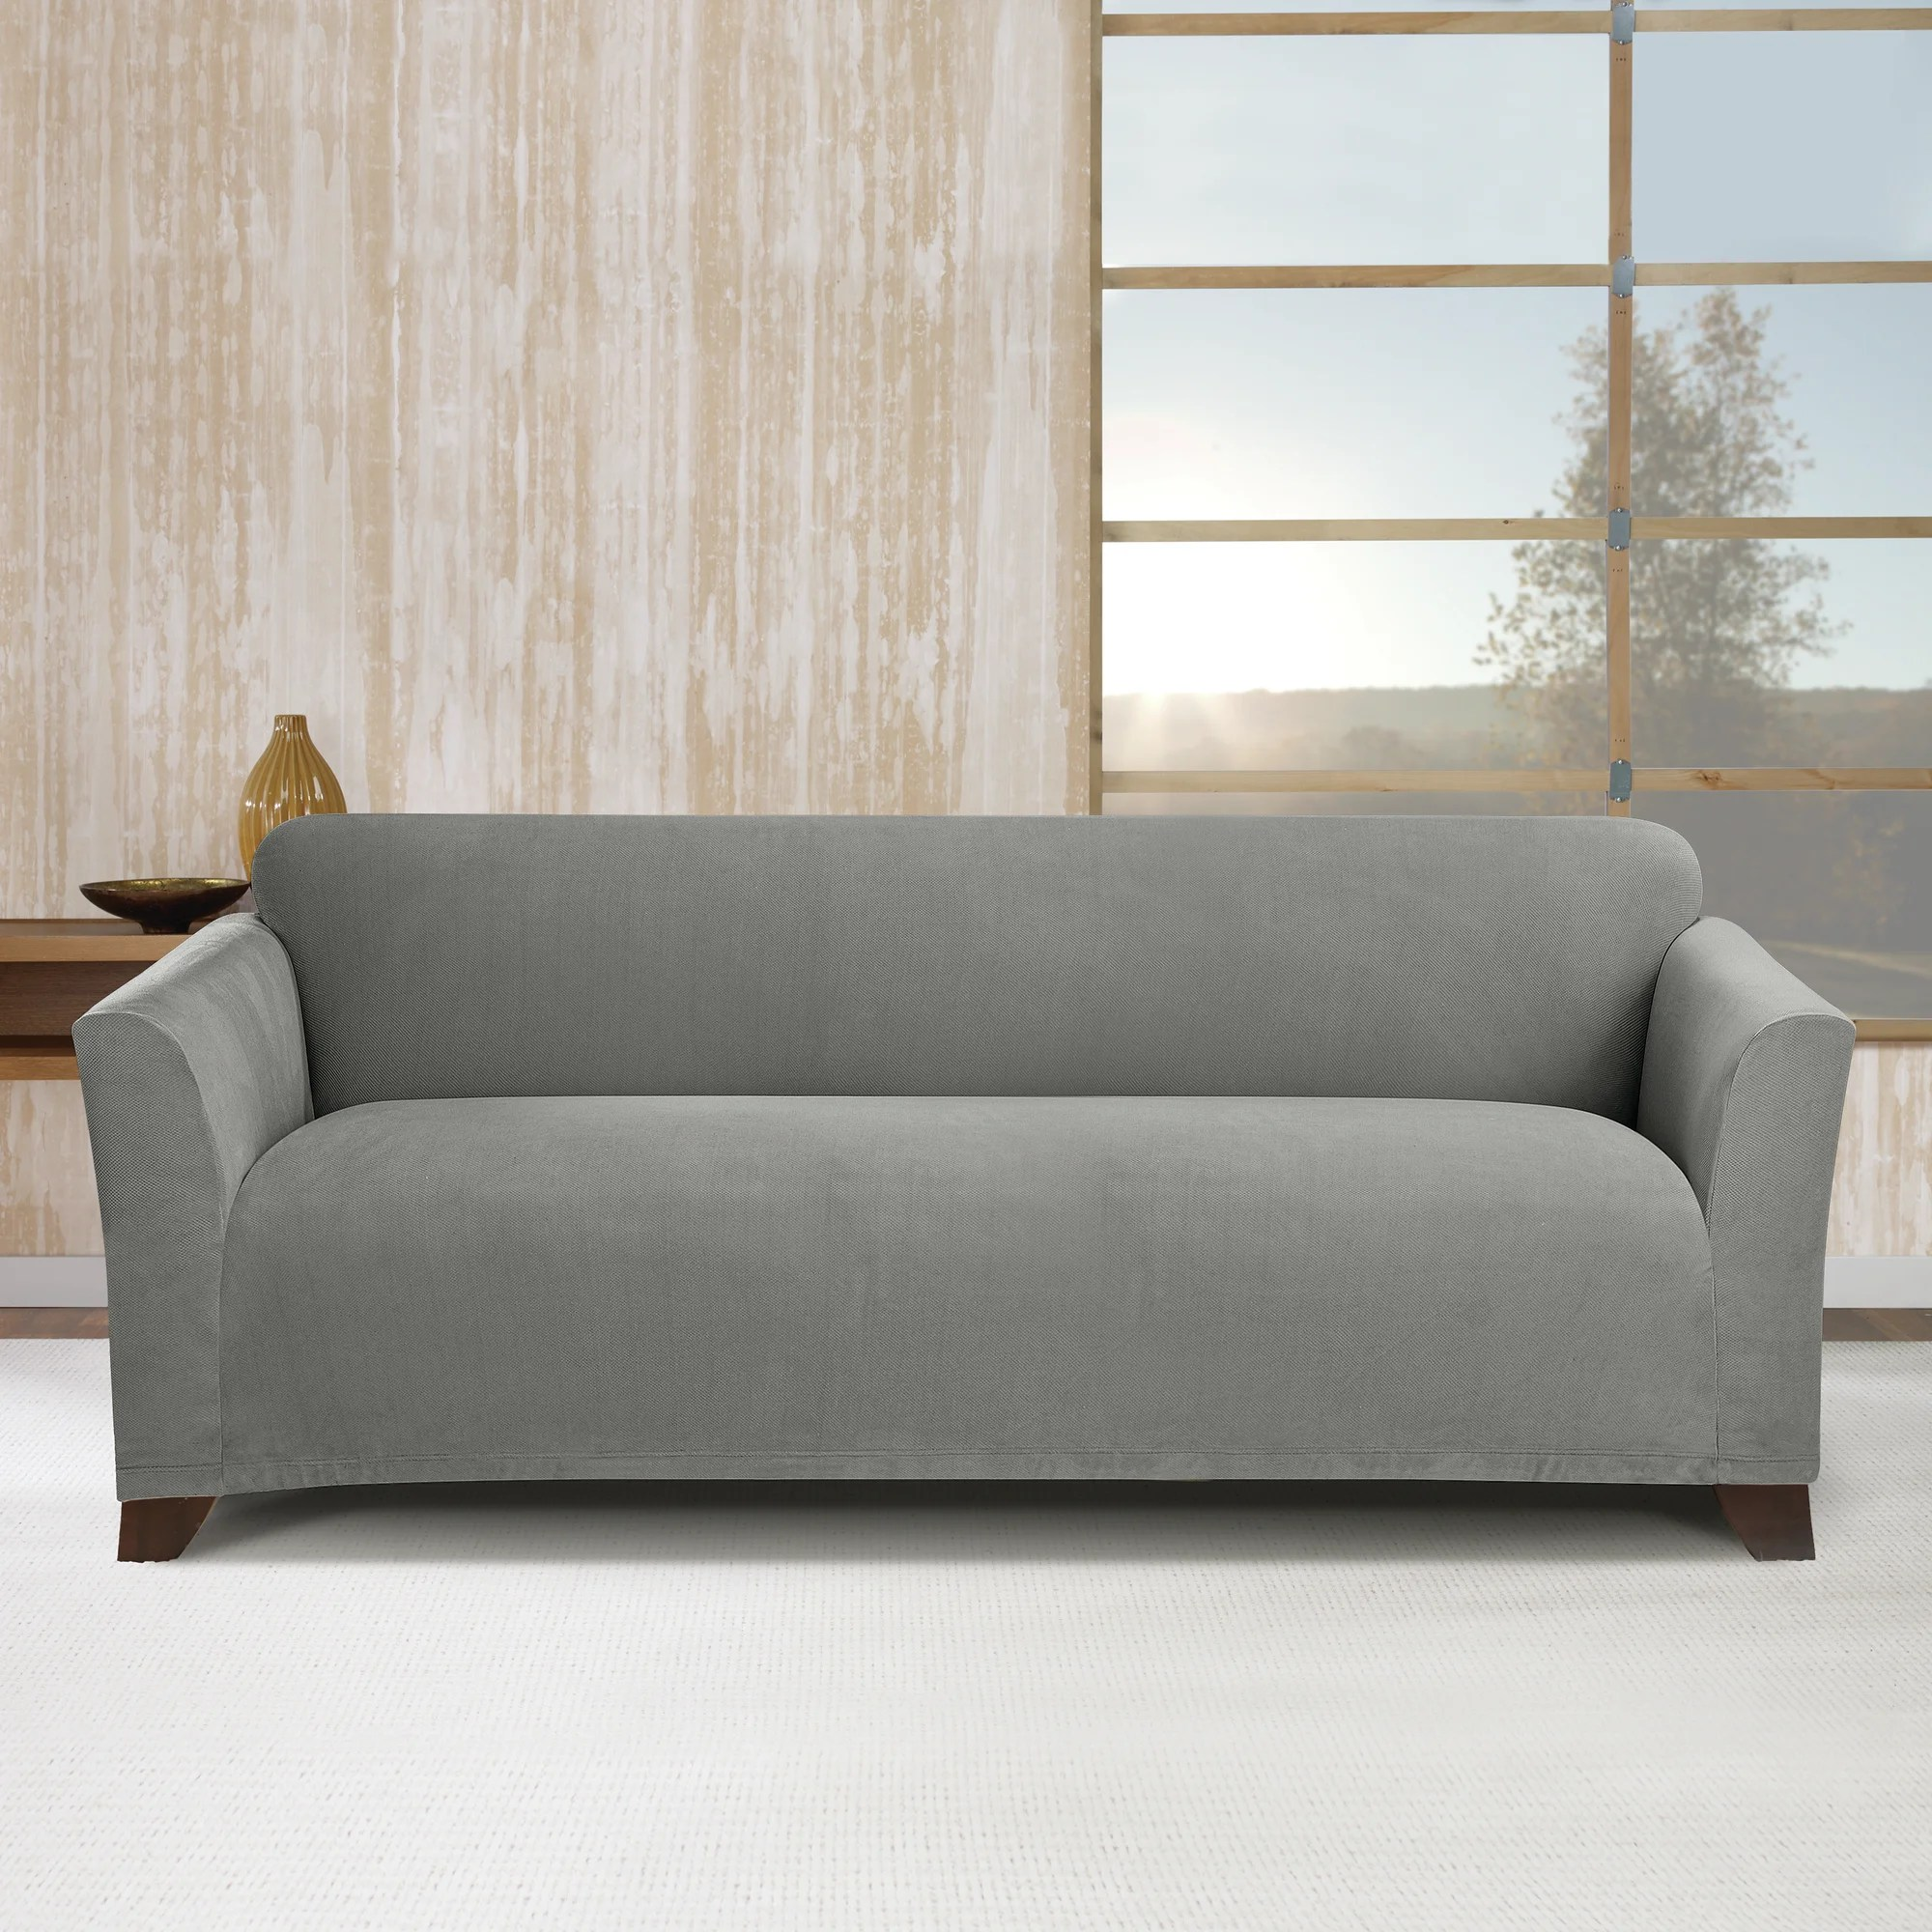 stretch morgan 1 piece sofa furniture cover outdoor l shaped sure fit simple subway box cushion slipcover